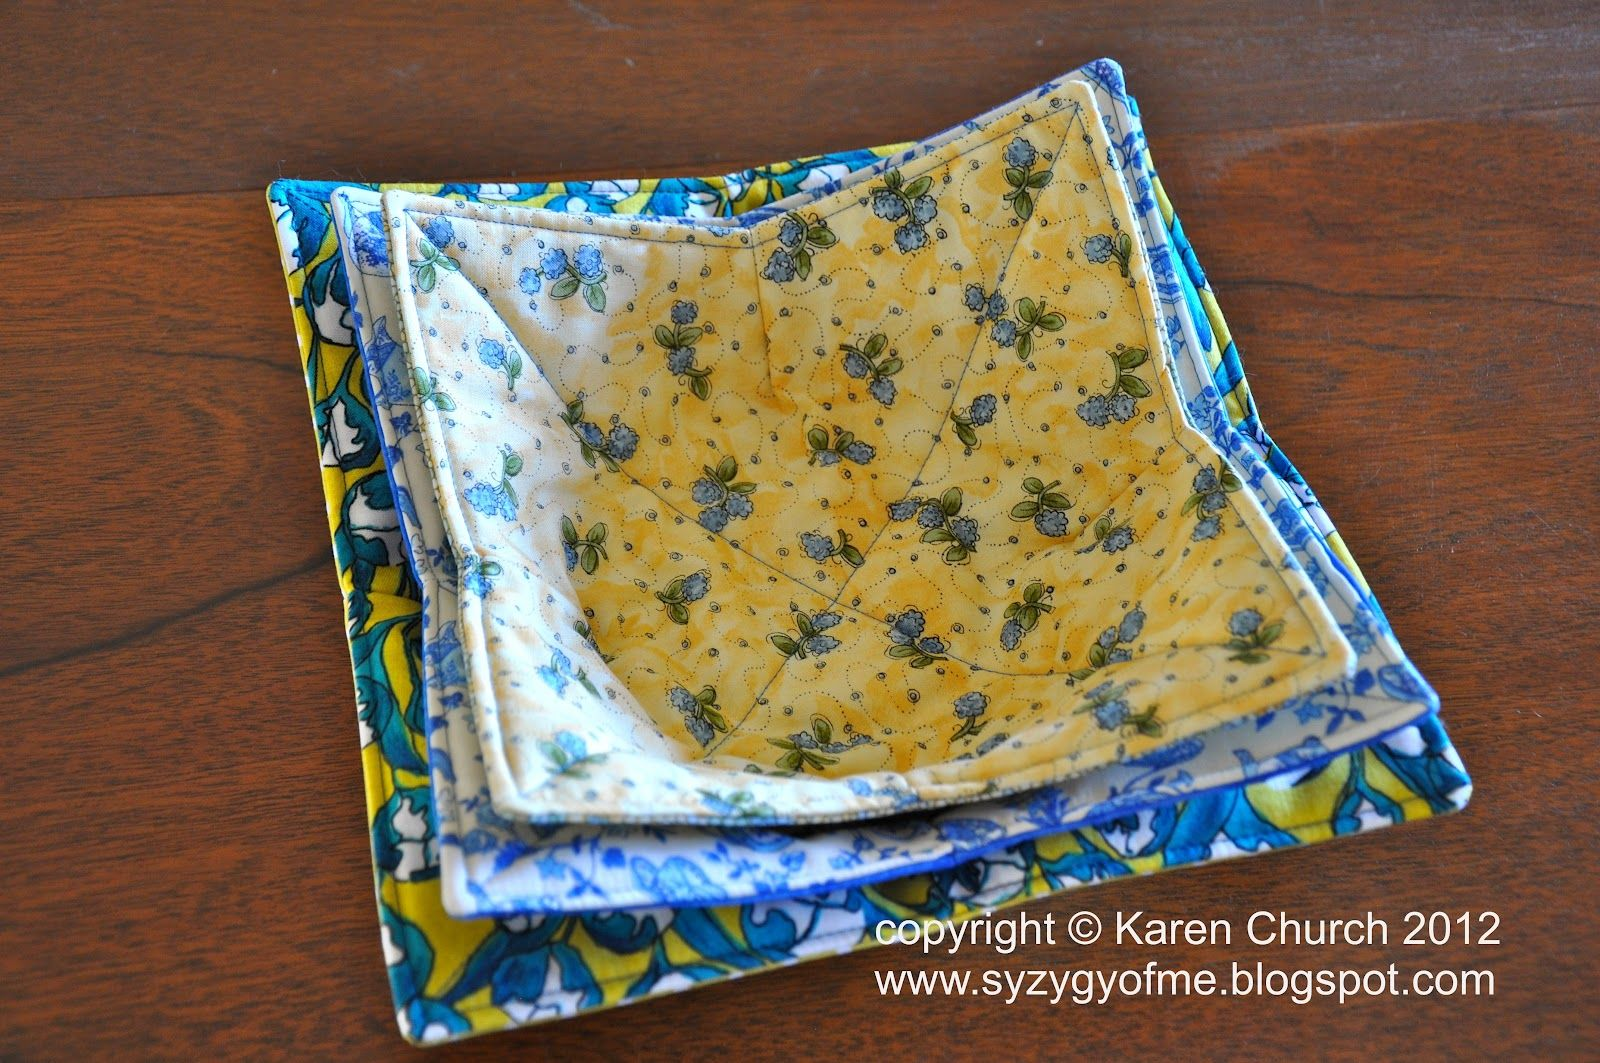 Microwave Bowl Holder Free Pattern Hope You All Enjoy This Quick And Fun Little Sewing